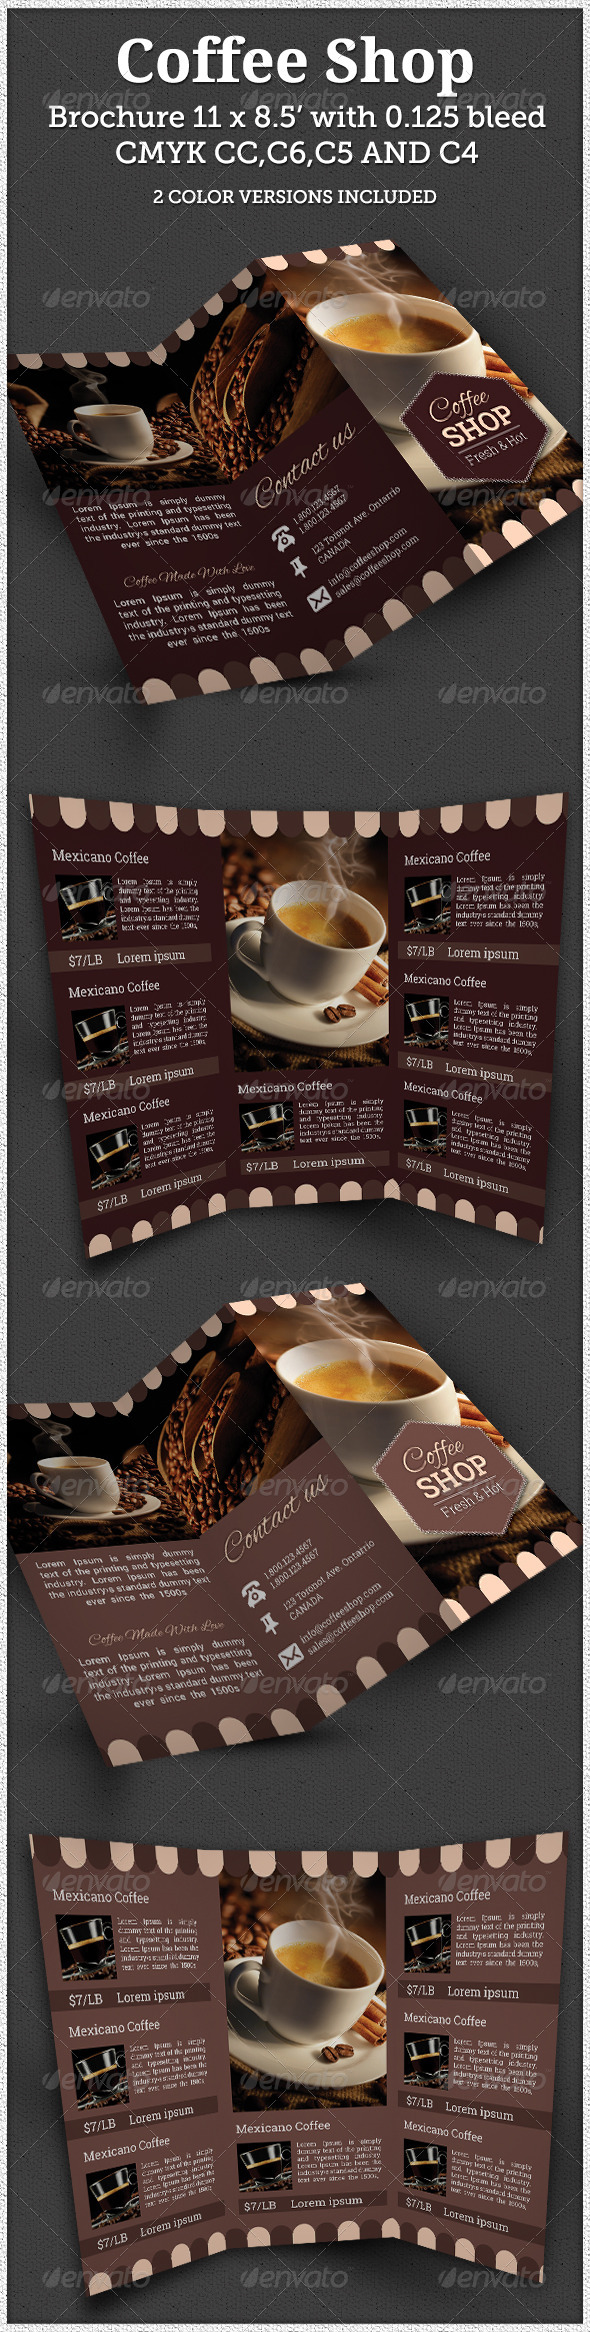 GraphicRiver Coffee Brochure Indesign Template 7728348